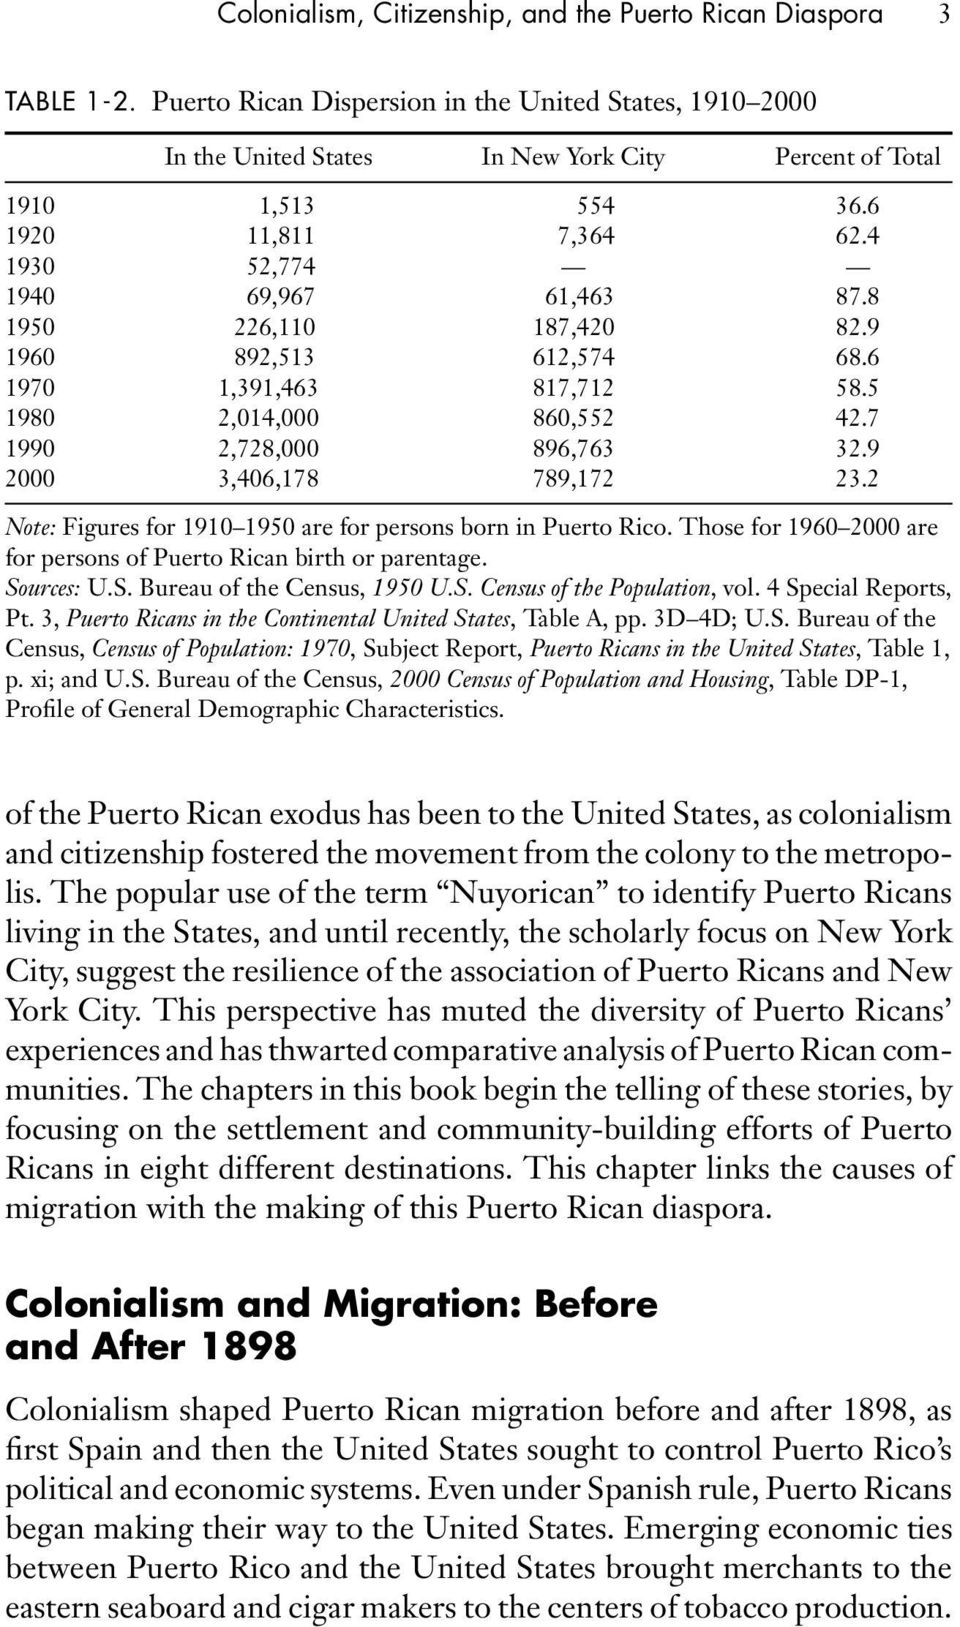 9 2000 3,406,178 789,172 23.2 Note: Figures for 1910 1950 are for persons born in Puerto Rico. Those for 1960 2000 are for persons of Puerto Rican birth or parentage. Sources: U.S. Bureau of the Census, 1950 U.